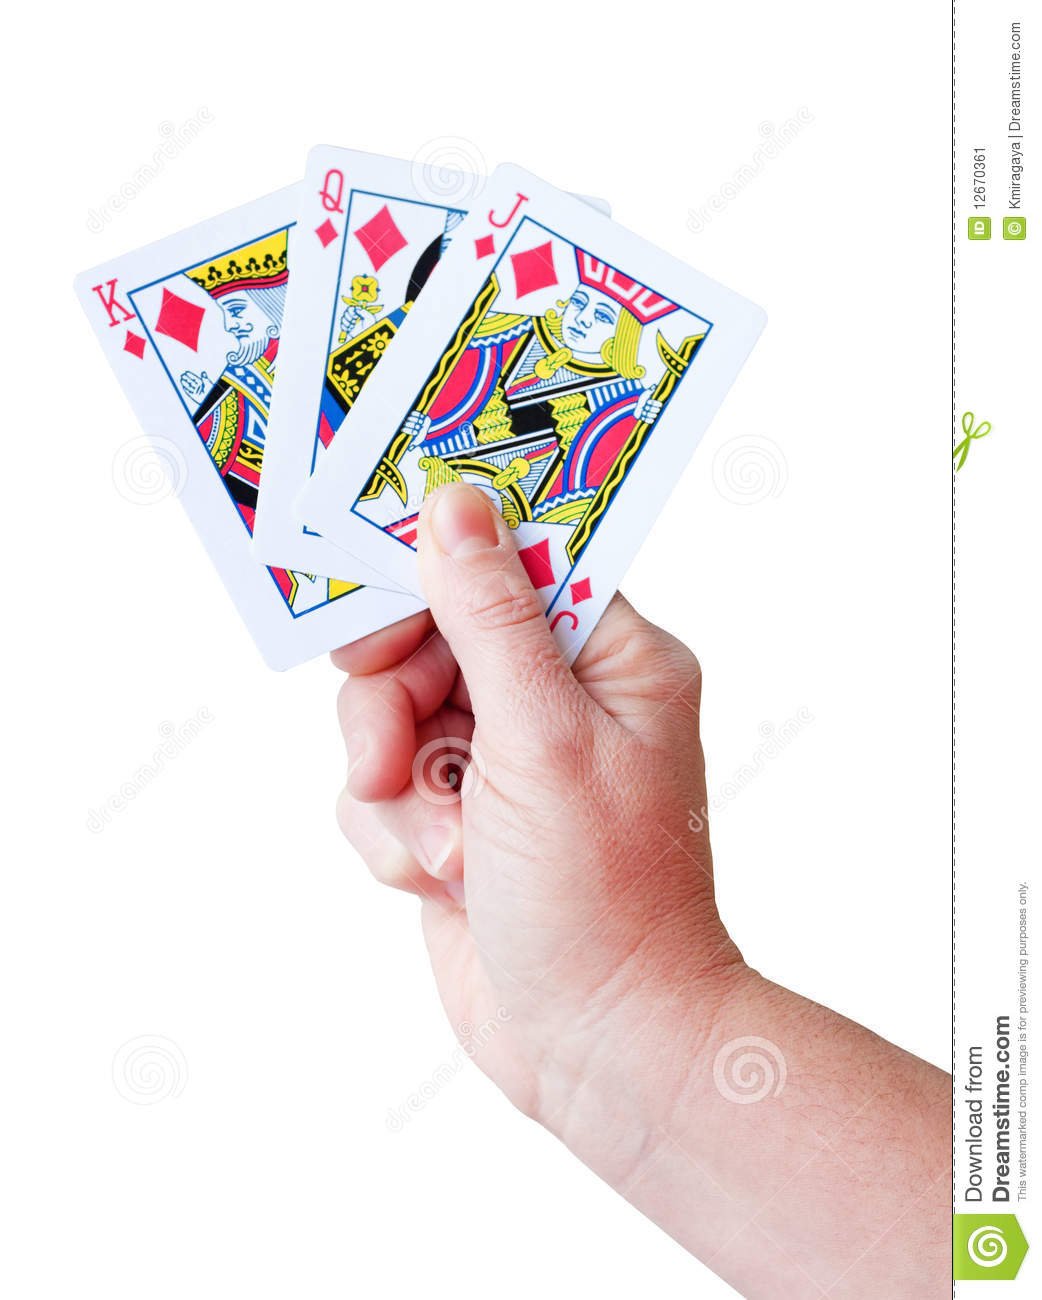 hand holding a set of playing cards stock image image School Picnic Clip Art Family Picnic Day Clip Art